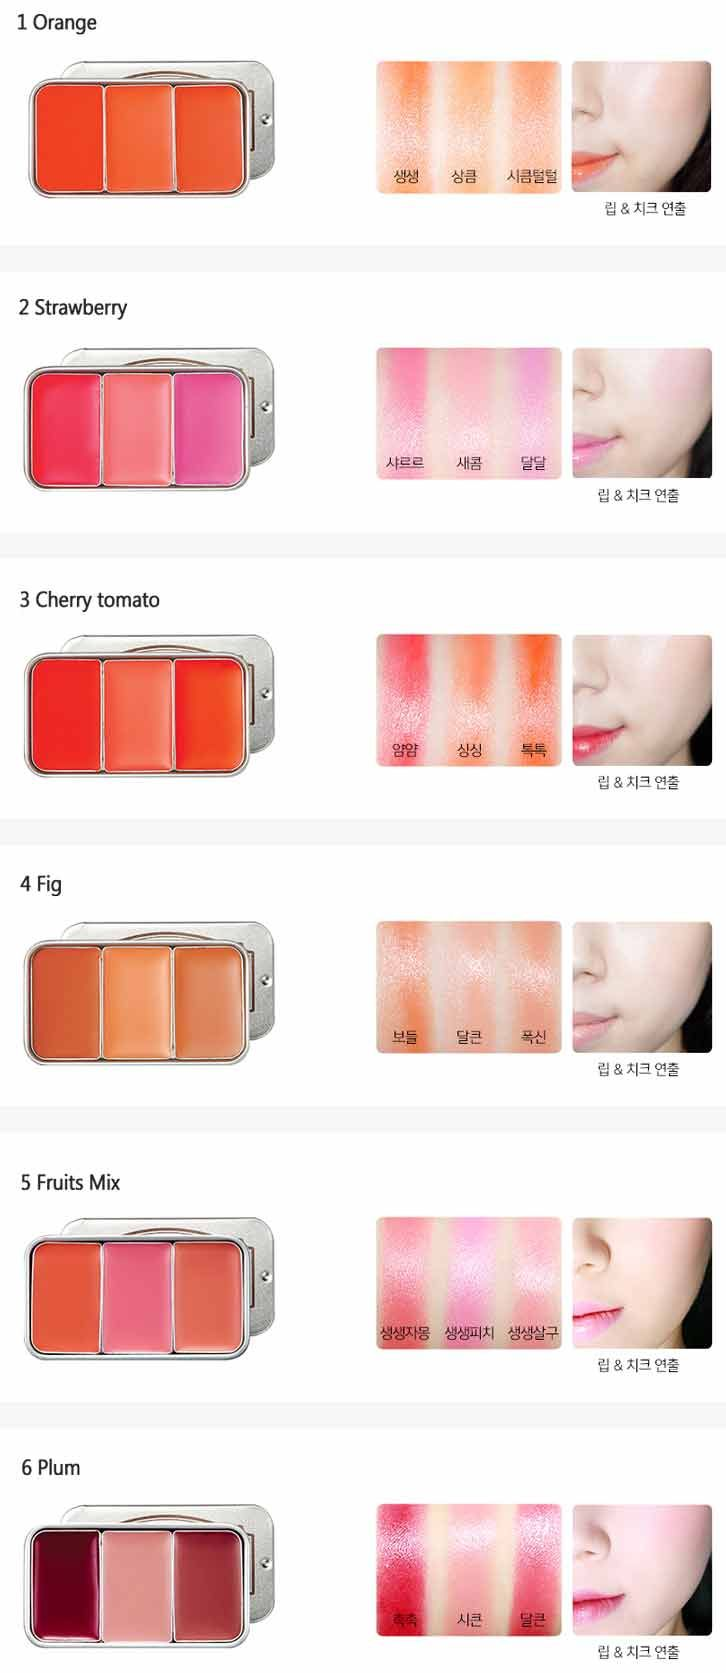 Skinfood Fresh Fruit Lip Cheek Trio 2 5 G 3an Essence Lip Balm